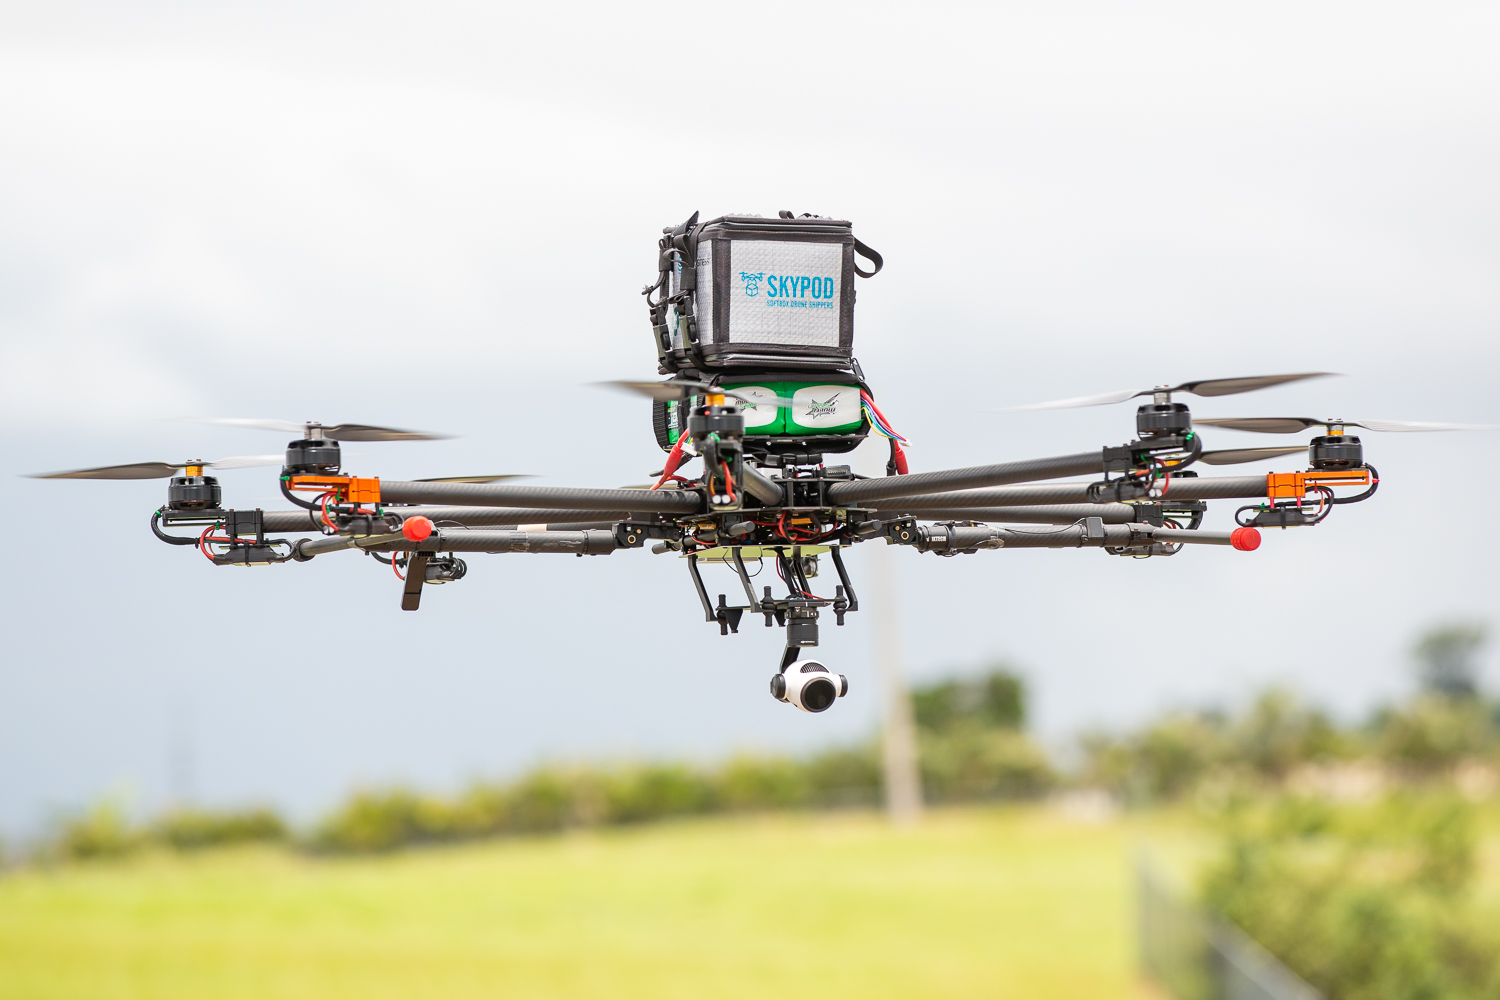 A drone lifts off during a test flight in Puerto Rico this week. Direct Relief, AT&T, Softbox, and Volans-i were all part of a pilot project that tested transporting medicine by drone, a system that could be replicated during the next emergency to reach areas cut off by storm damage or limited supply chains. (Photo courtesy of Merck)